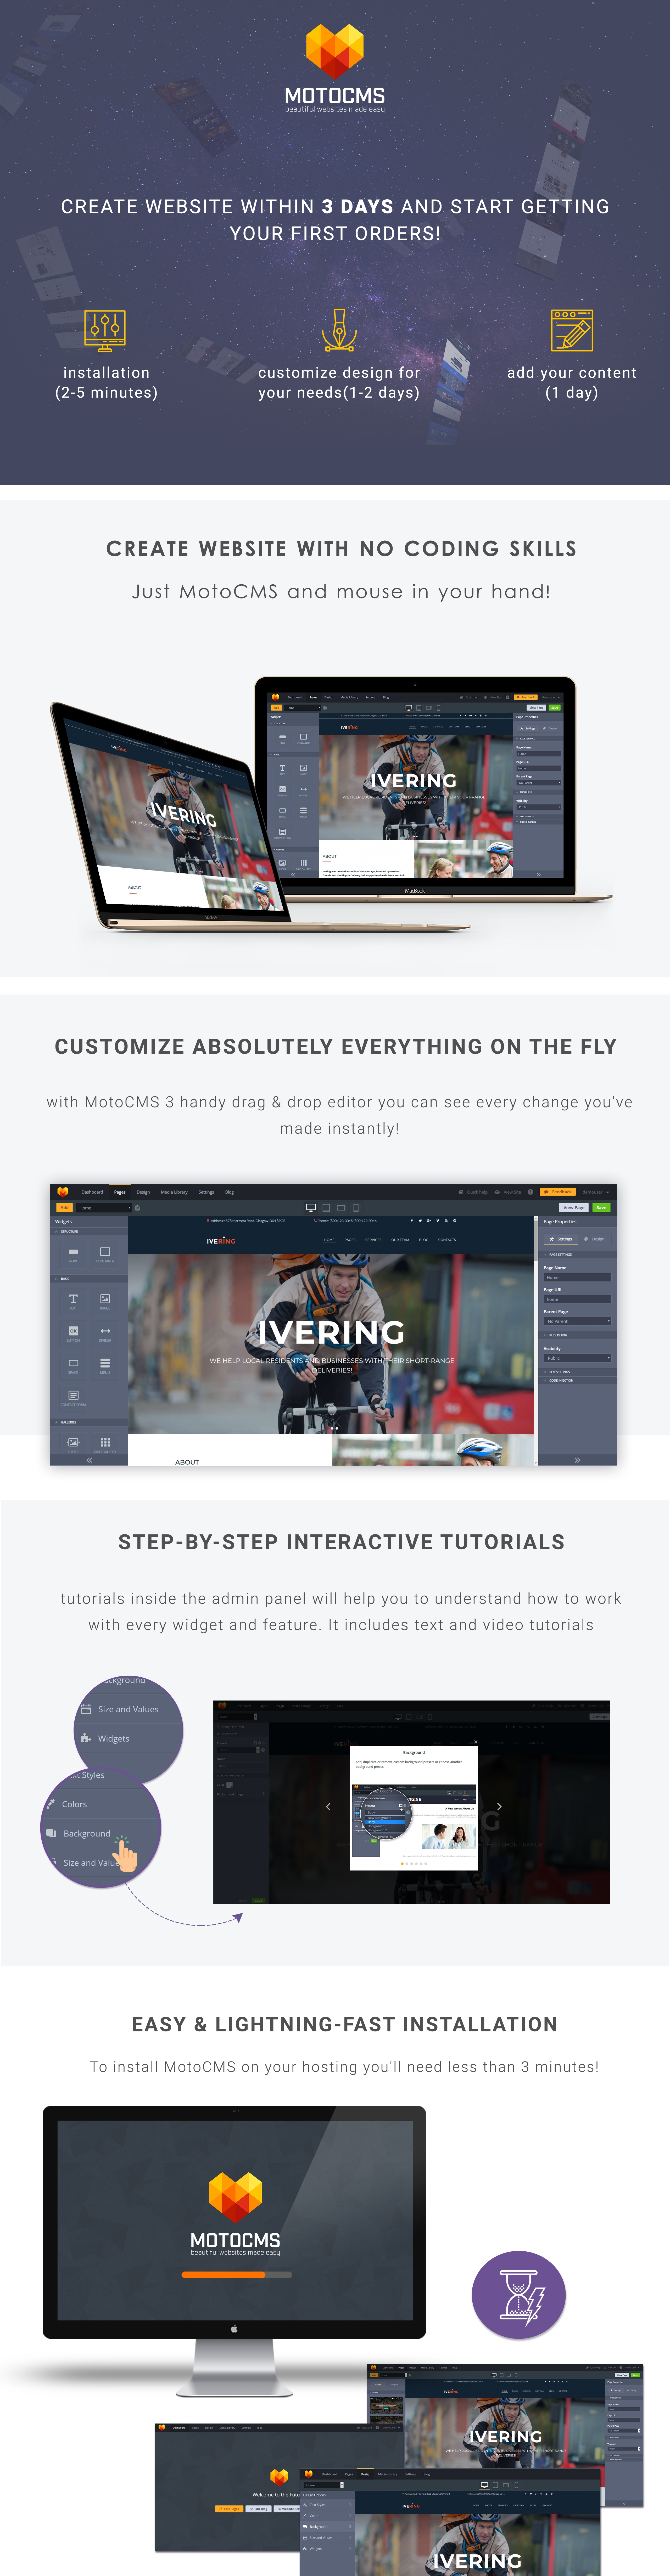 Ivering - Bike Courier & Package Delivery Moto CMS 3 Template